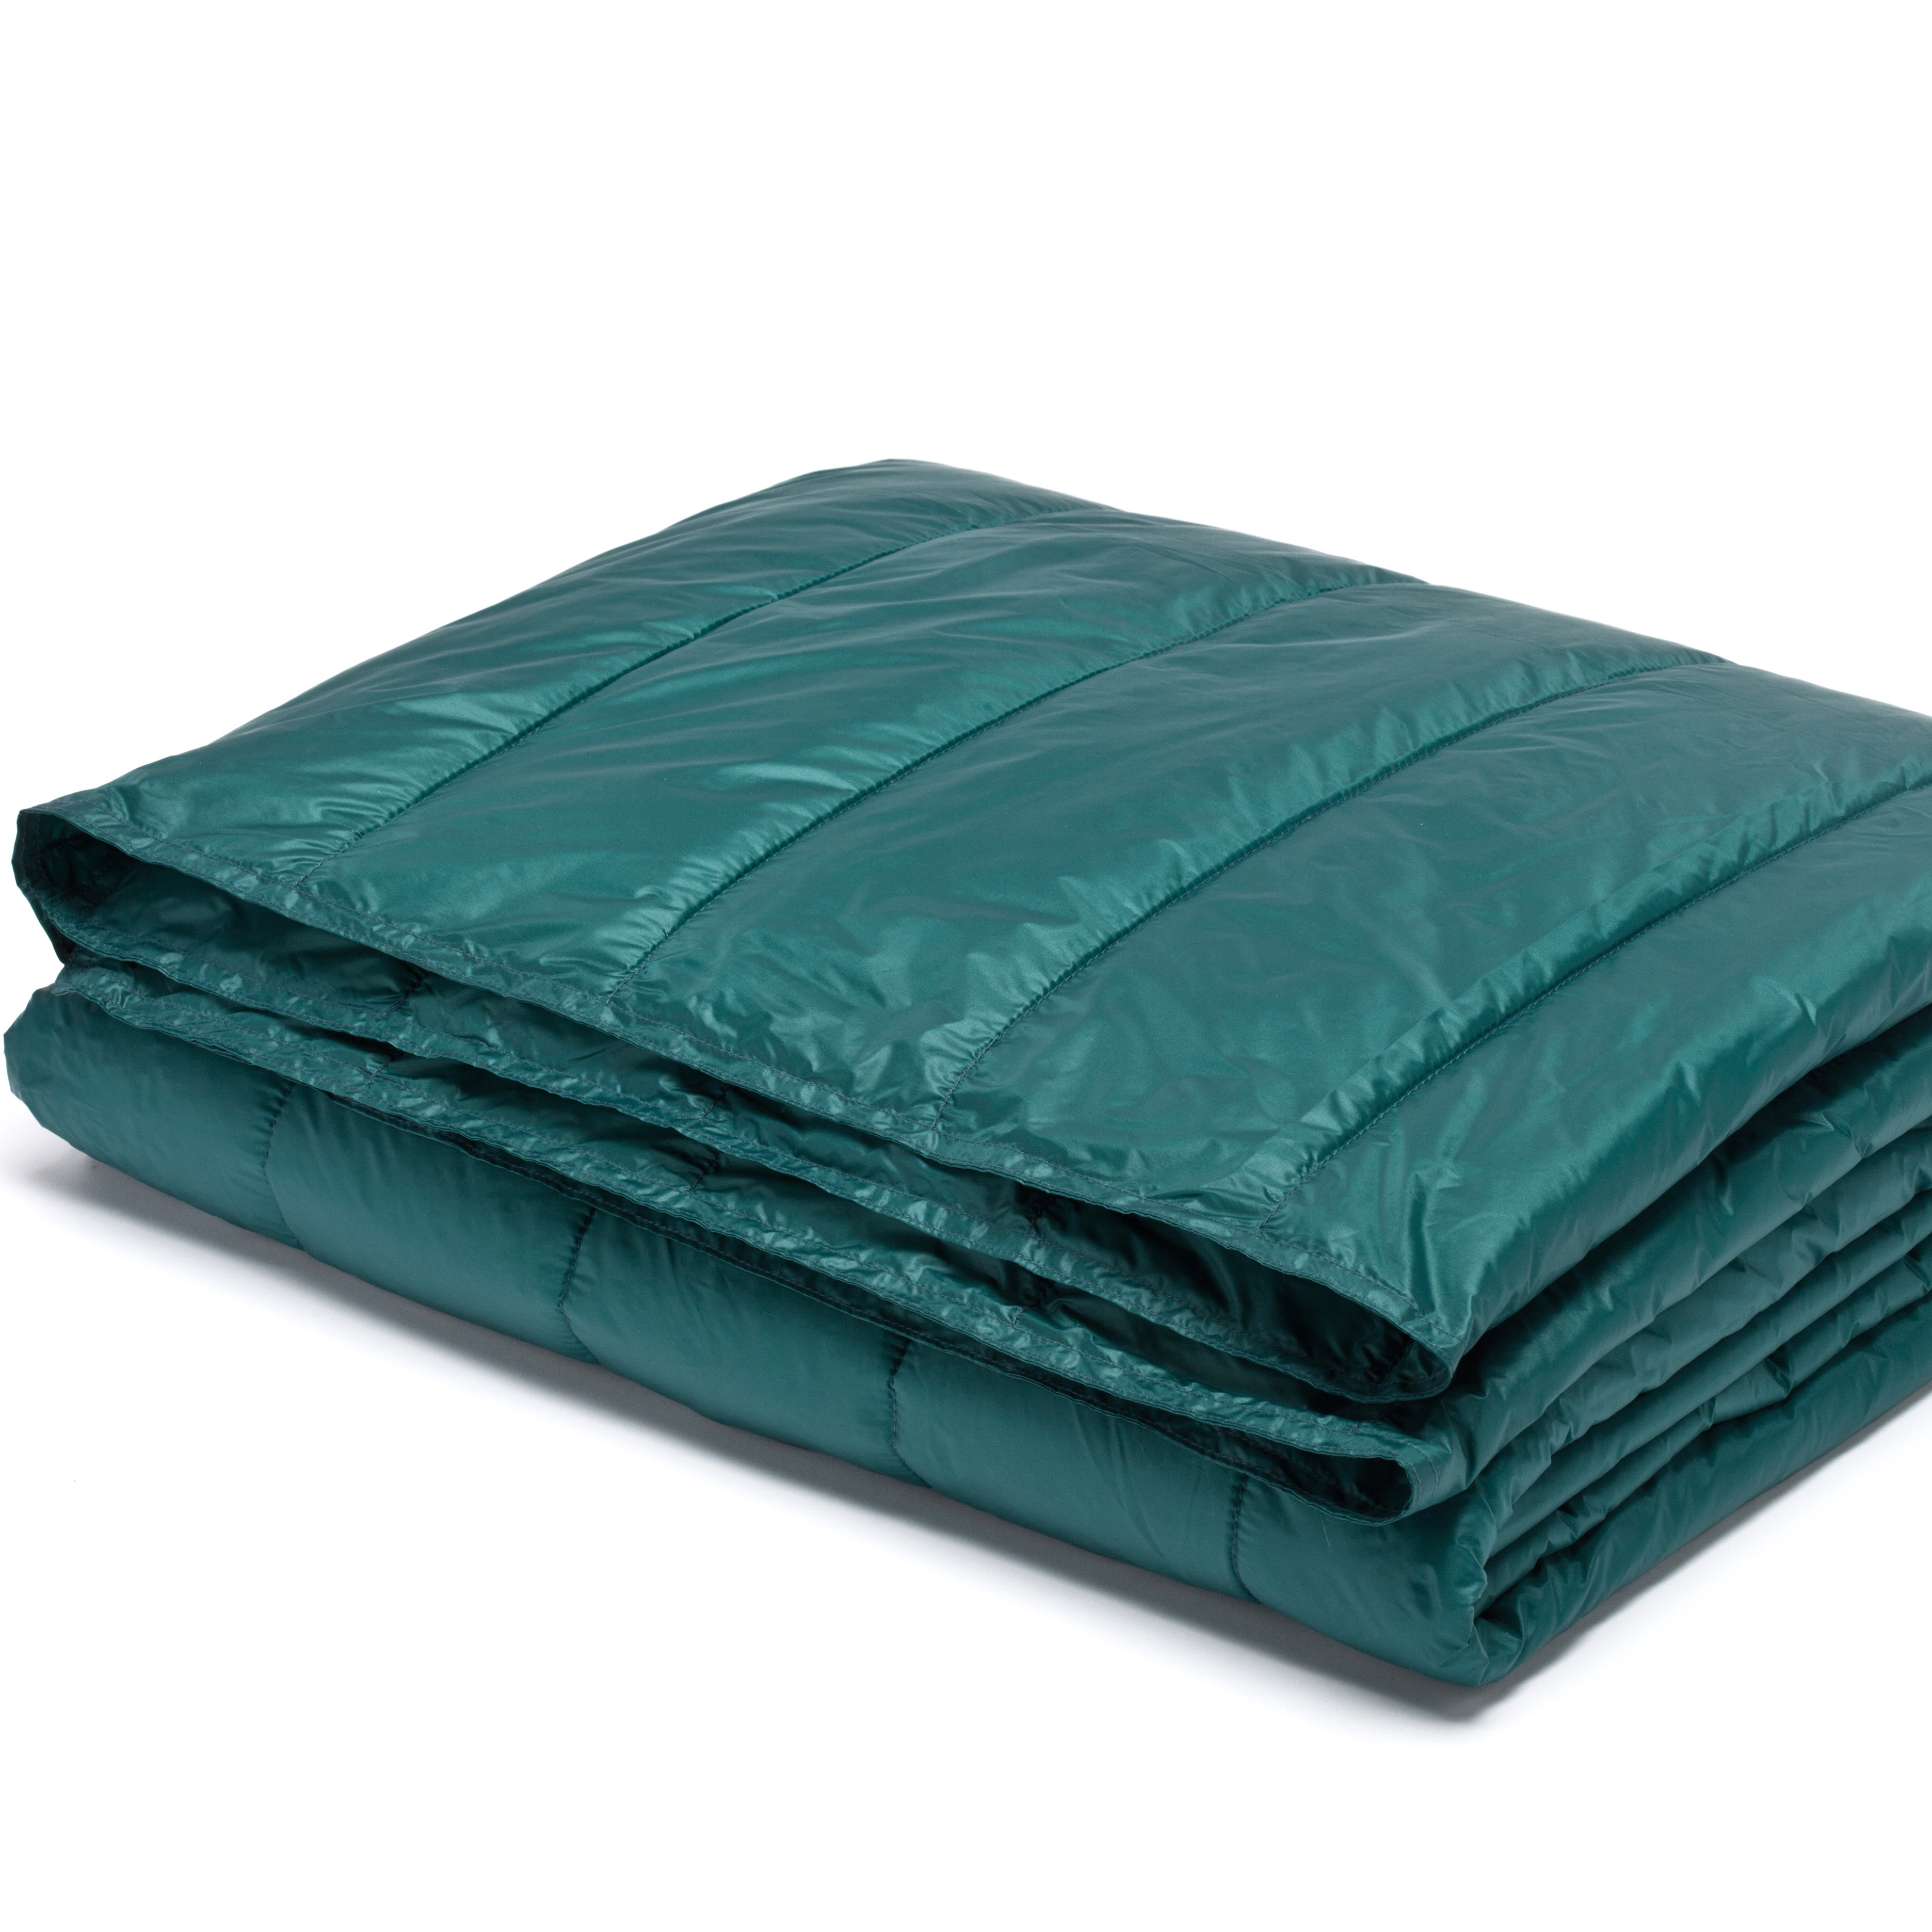 "PUFF 50"" x 70"" Packable Down Alternative Indoor/Outdoor Water Resistant Throw with Extra Strong Nylon Cover"